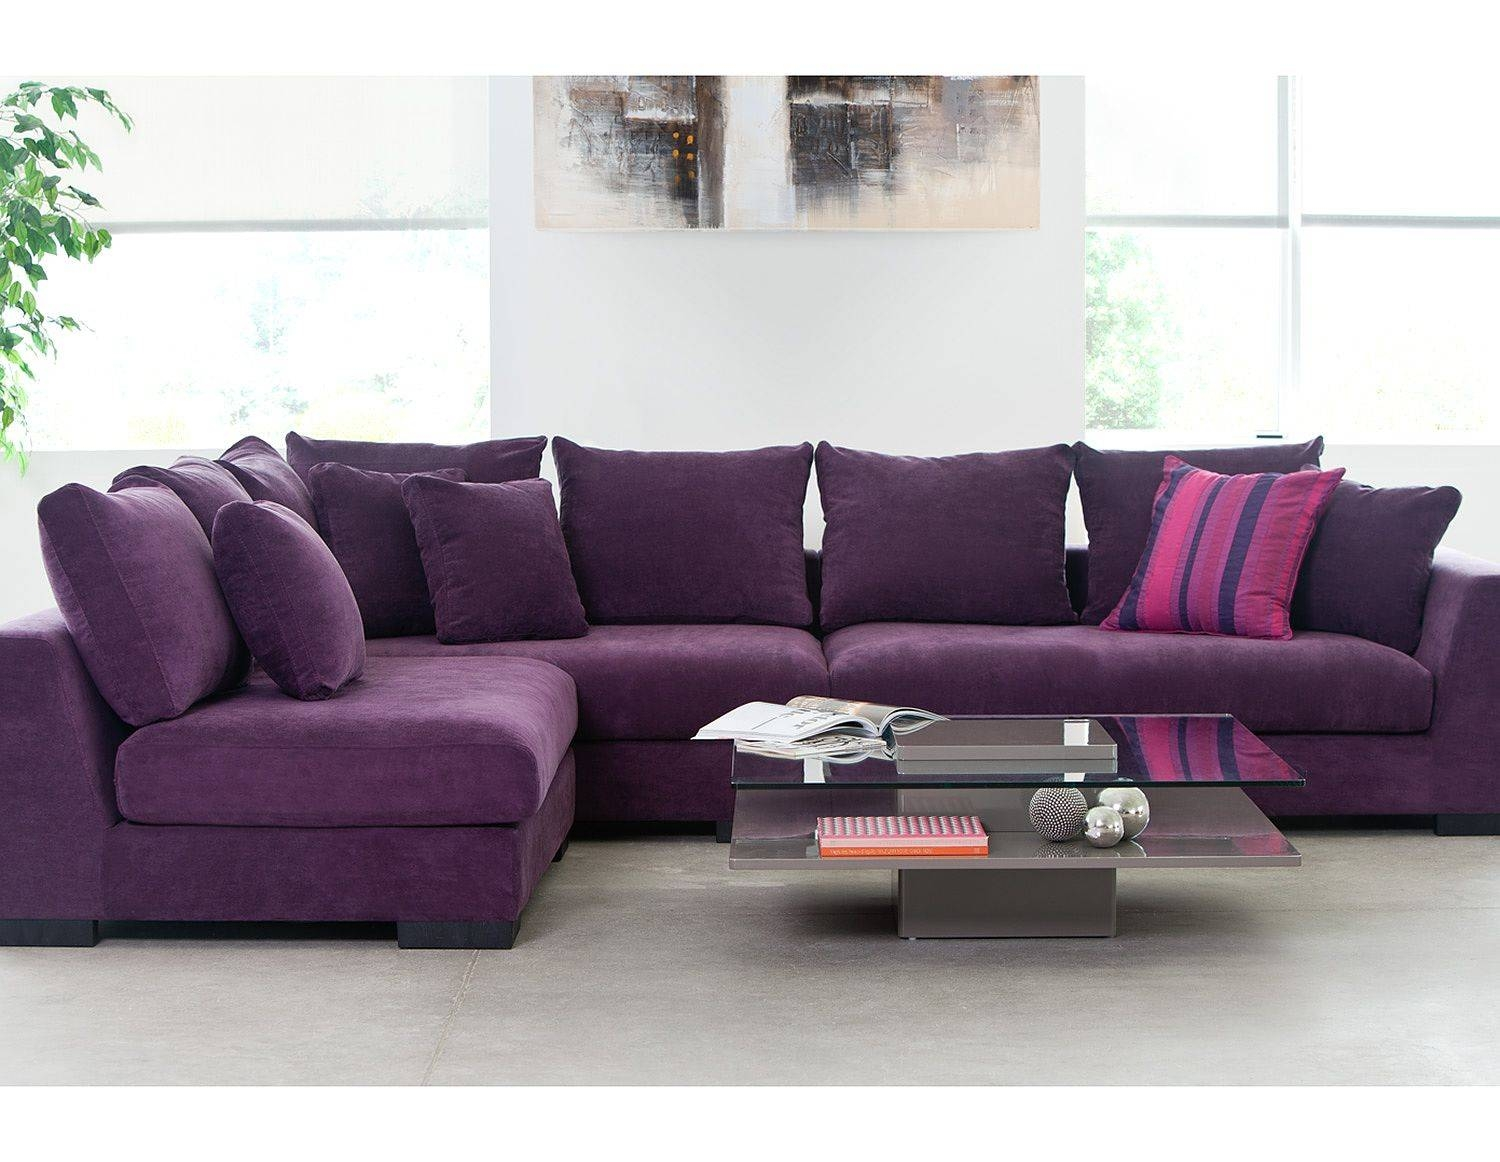 Cleanupflorida - Sectional Sofa Ideas with regard to Colorful Sectional Sofas (Image 4 of 30)